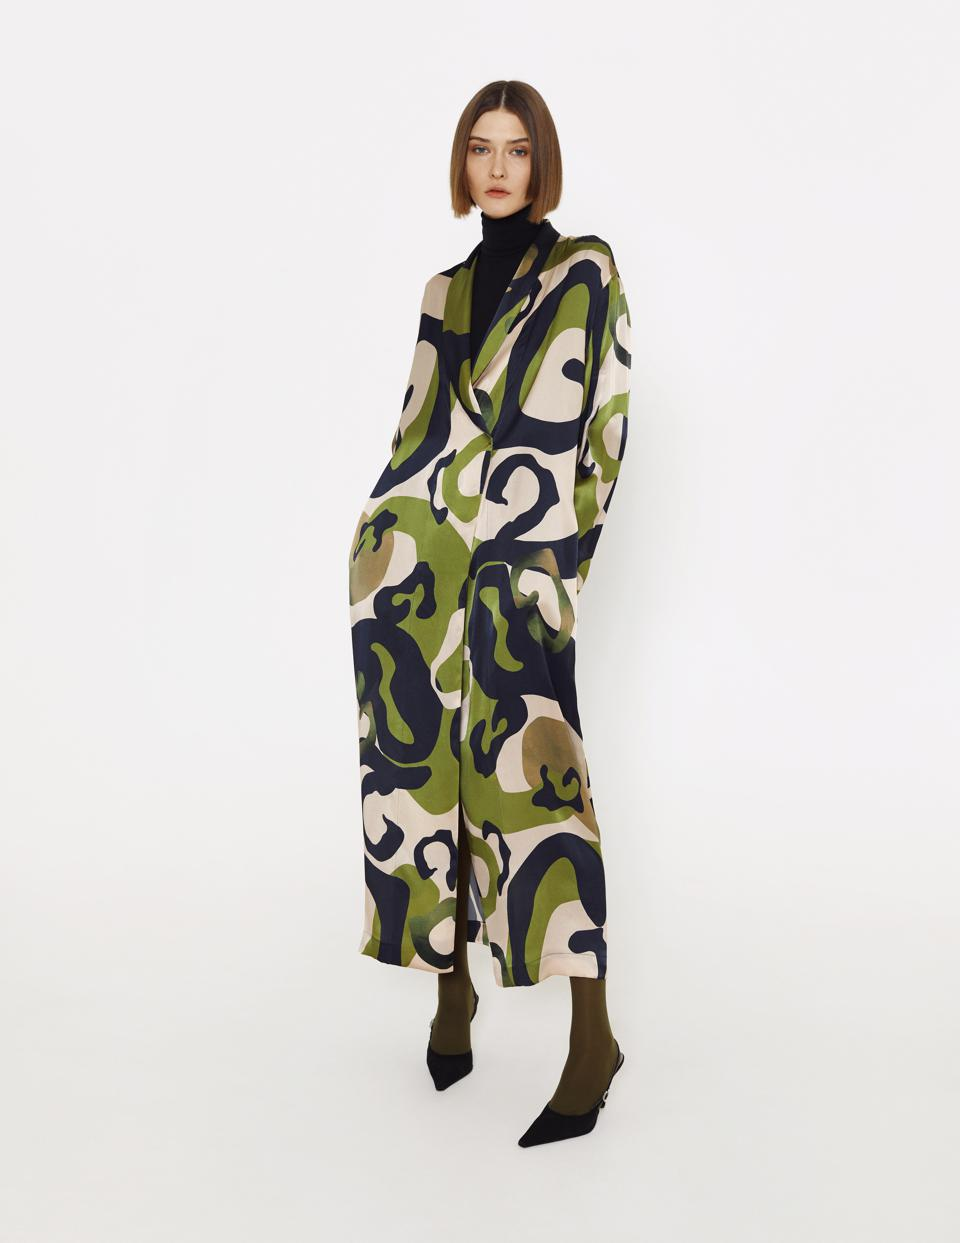 Peignoir-style silk robe with 'Traveller' print from LESSLESS x Alina Zamanova FW20 Art Line. Midaxi length, relaxed wrap fit with ties, two pockets.